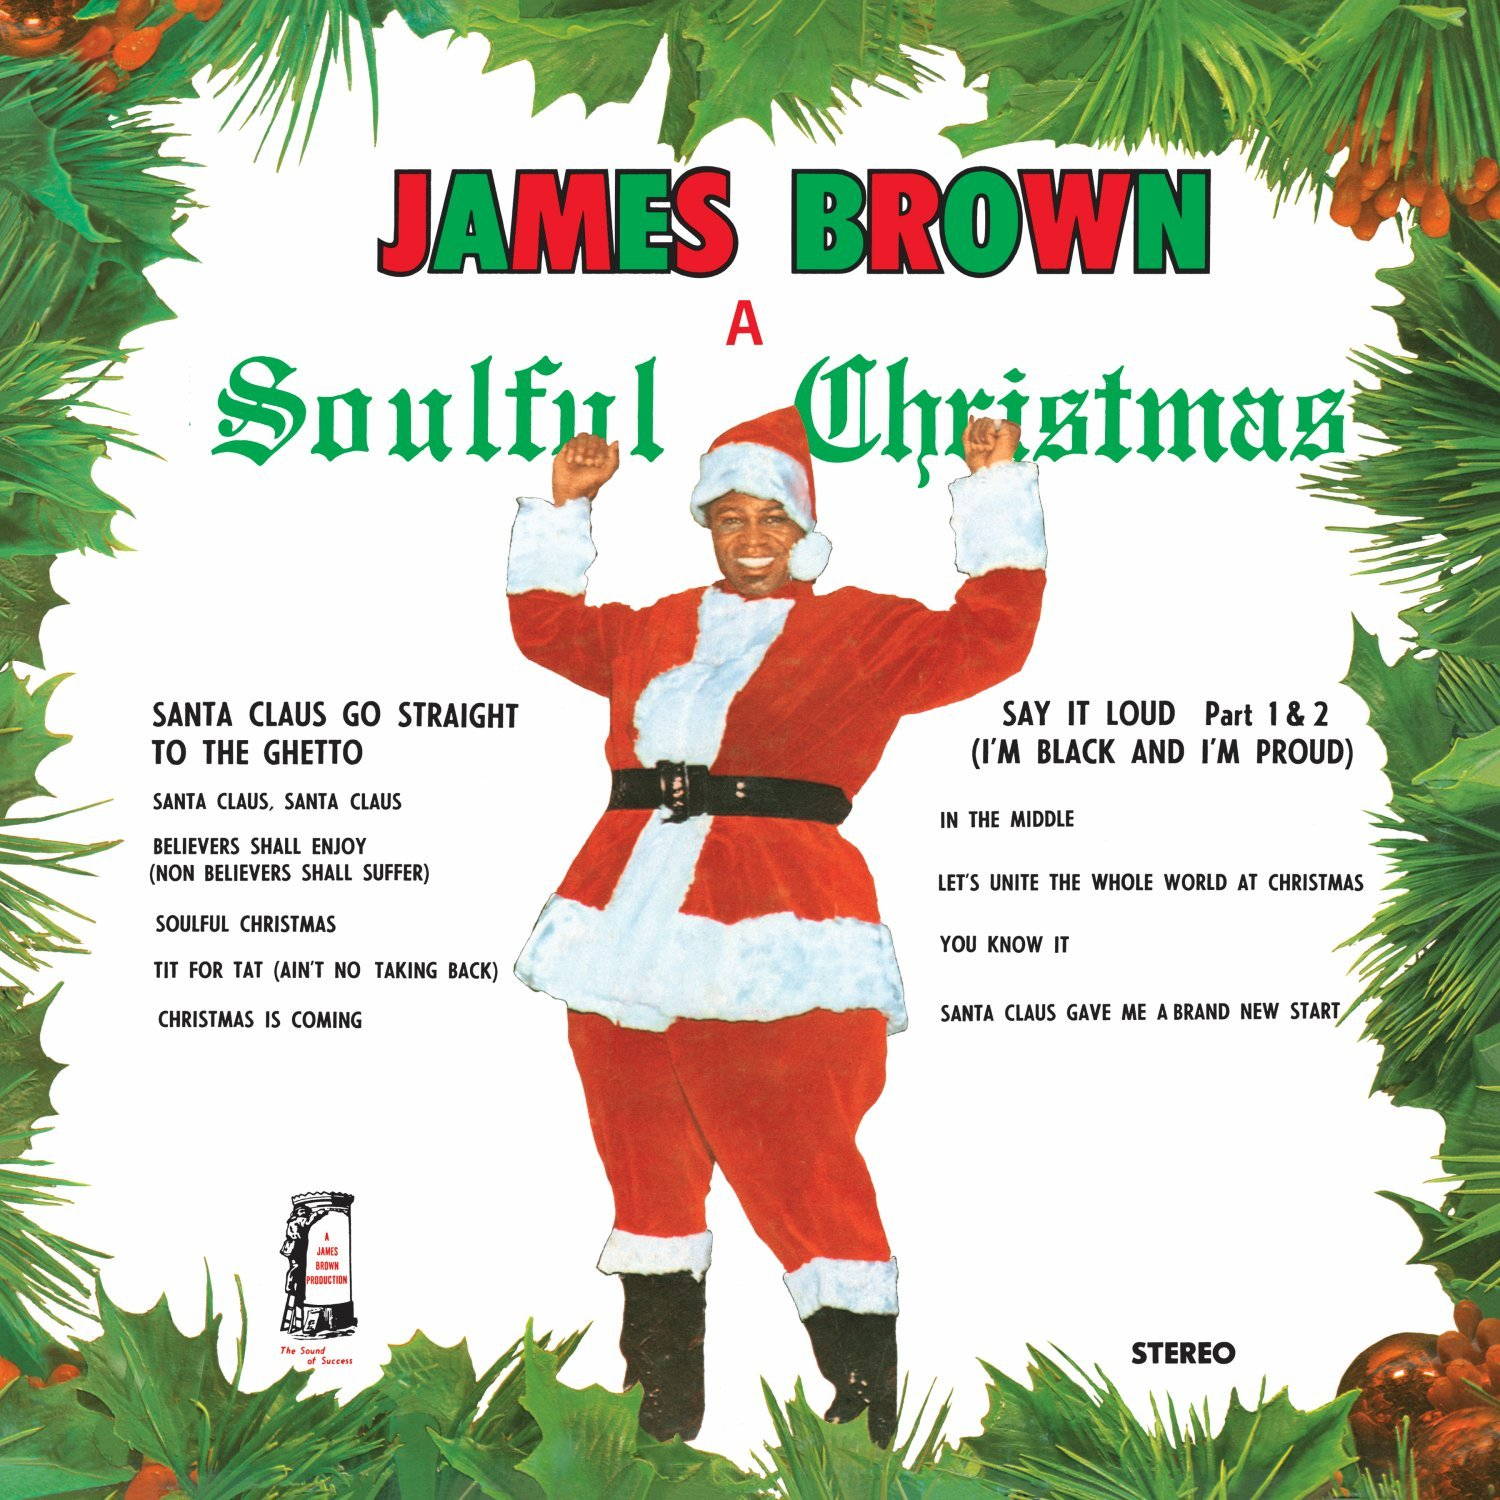 James Brown - Soulful Christmas [LP] - Amazon.com Music